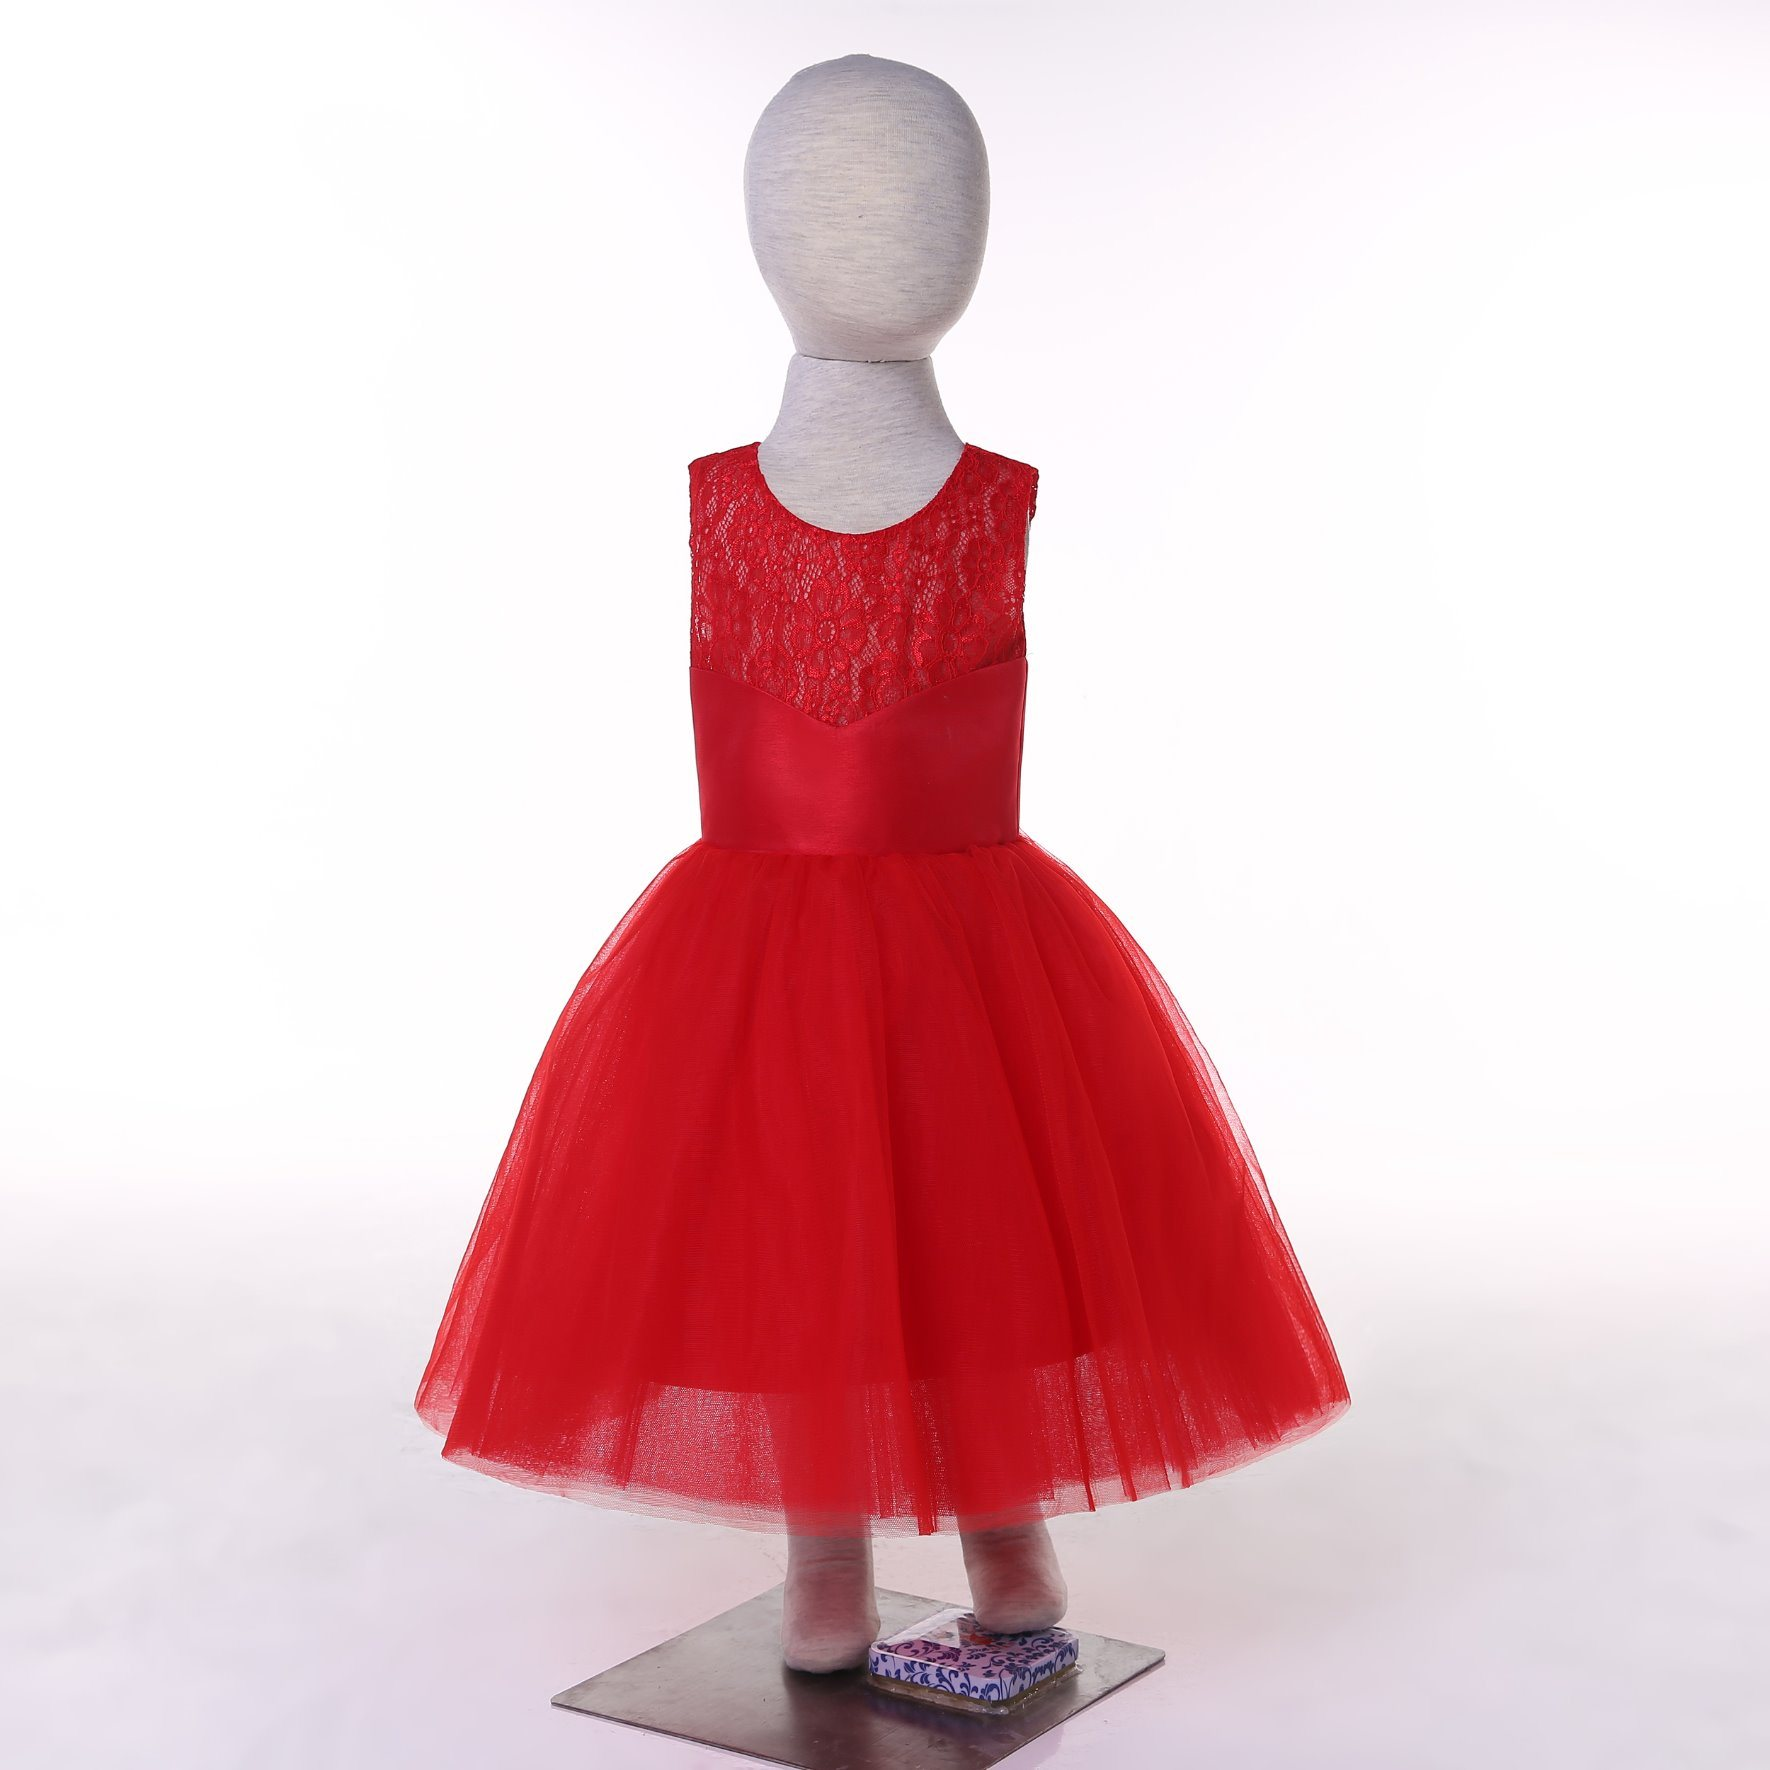 Satin Tulle Red/White/Ivory/Turquoise Flower Girl Dress